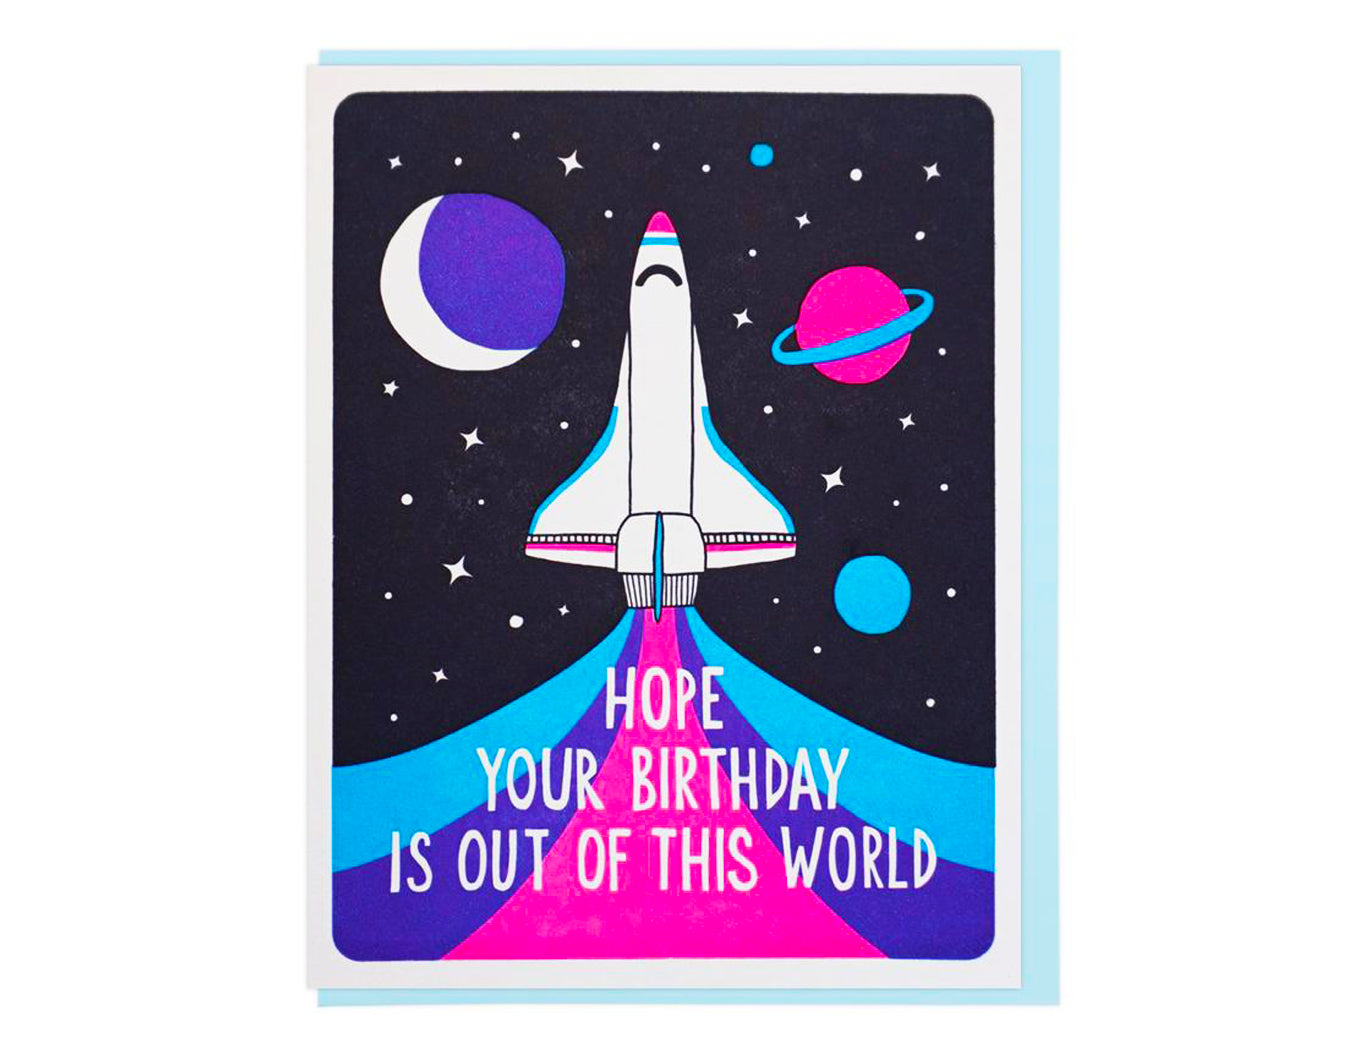 ROCKET BLASTING OFF INTO SPACE TEXT READS HOPE YOUR BIRTHDAY IS OUT OF THIS WORLD